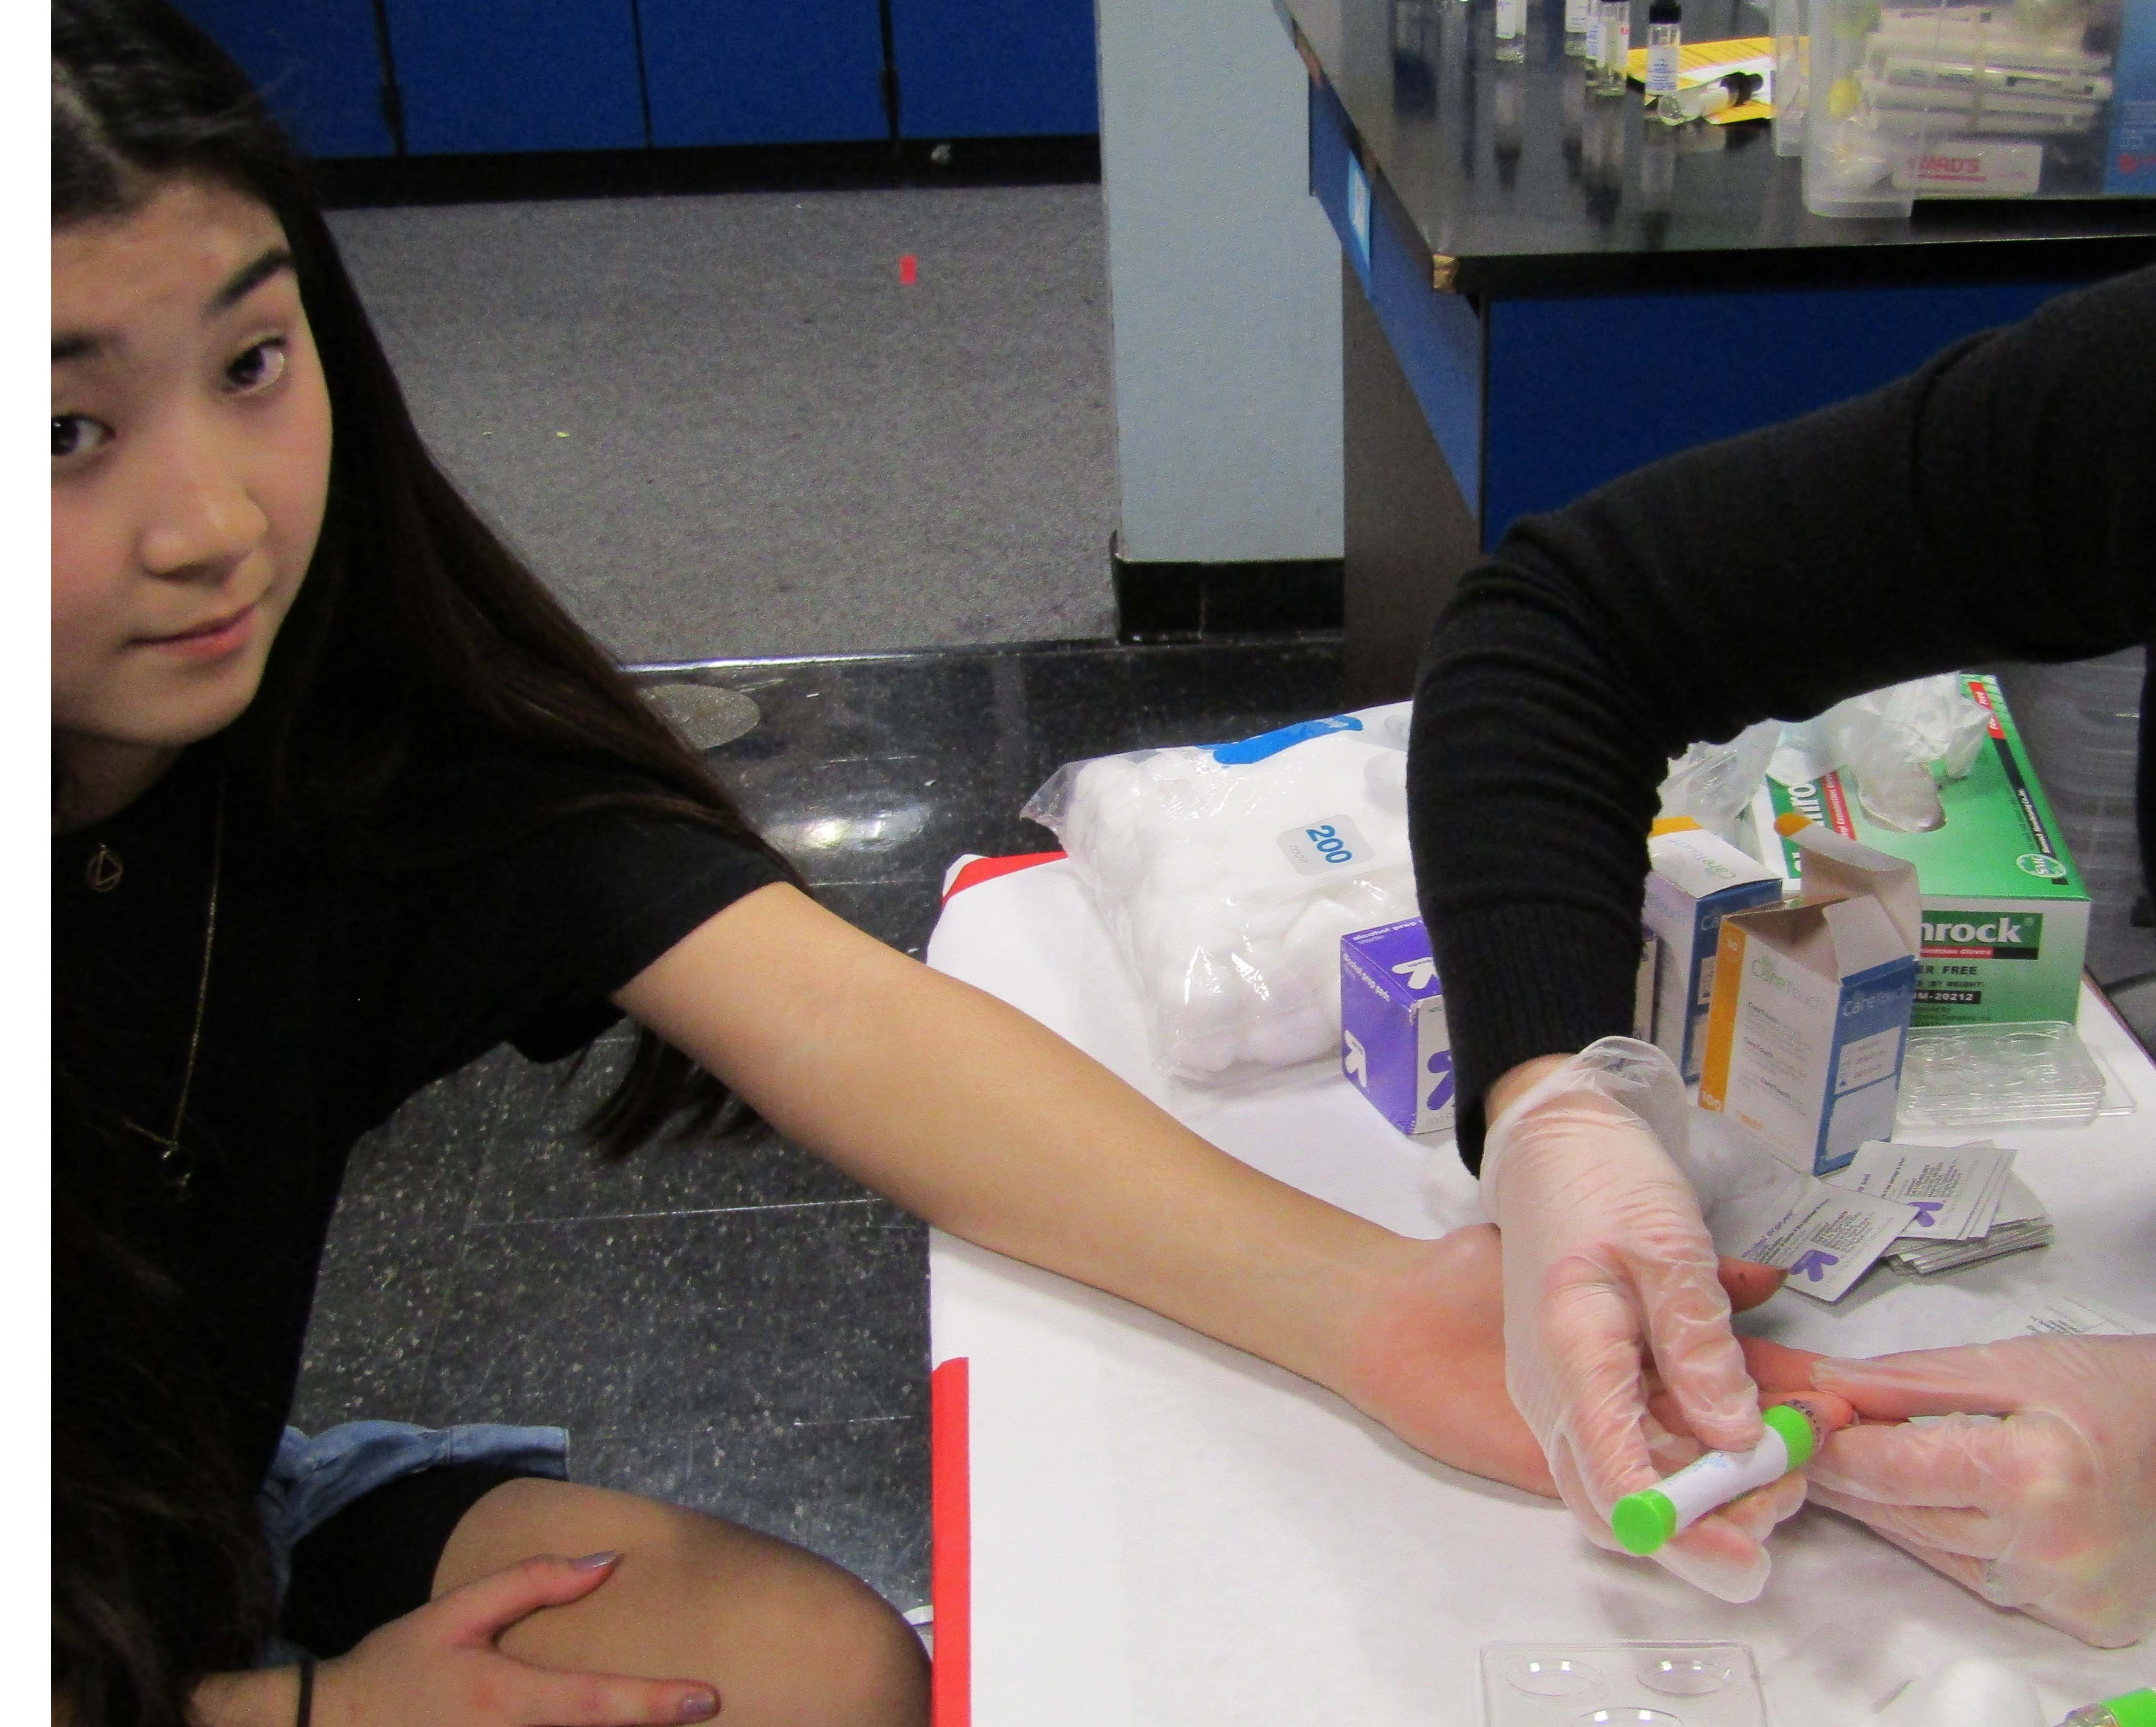 Junior Anna Seiki gets her finger pricked at annual physiology class blood testing.